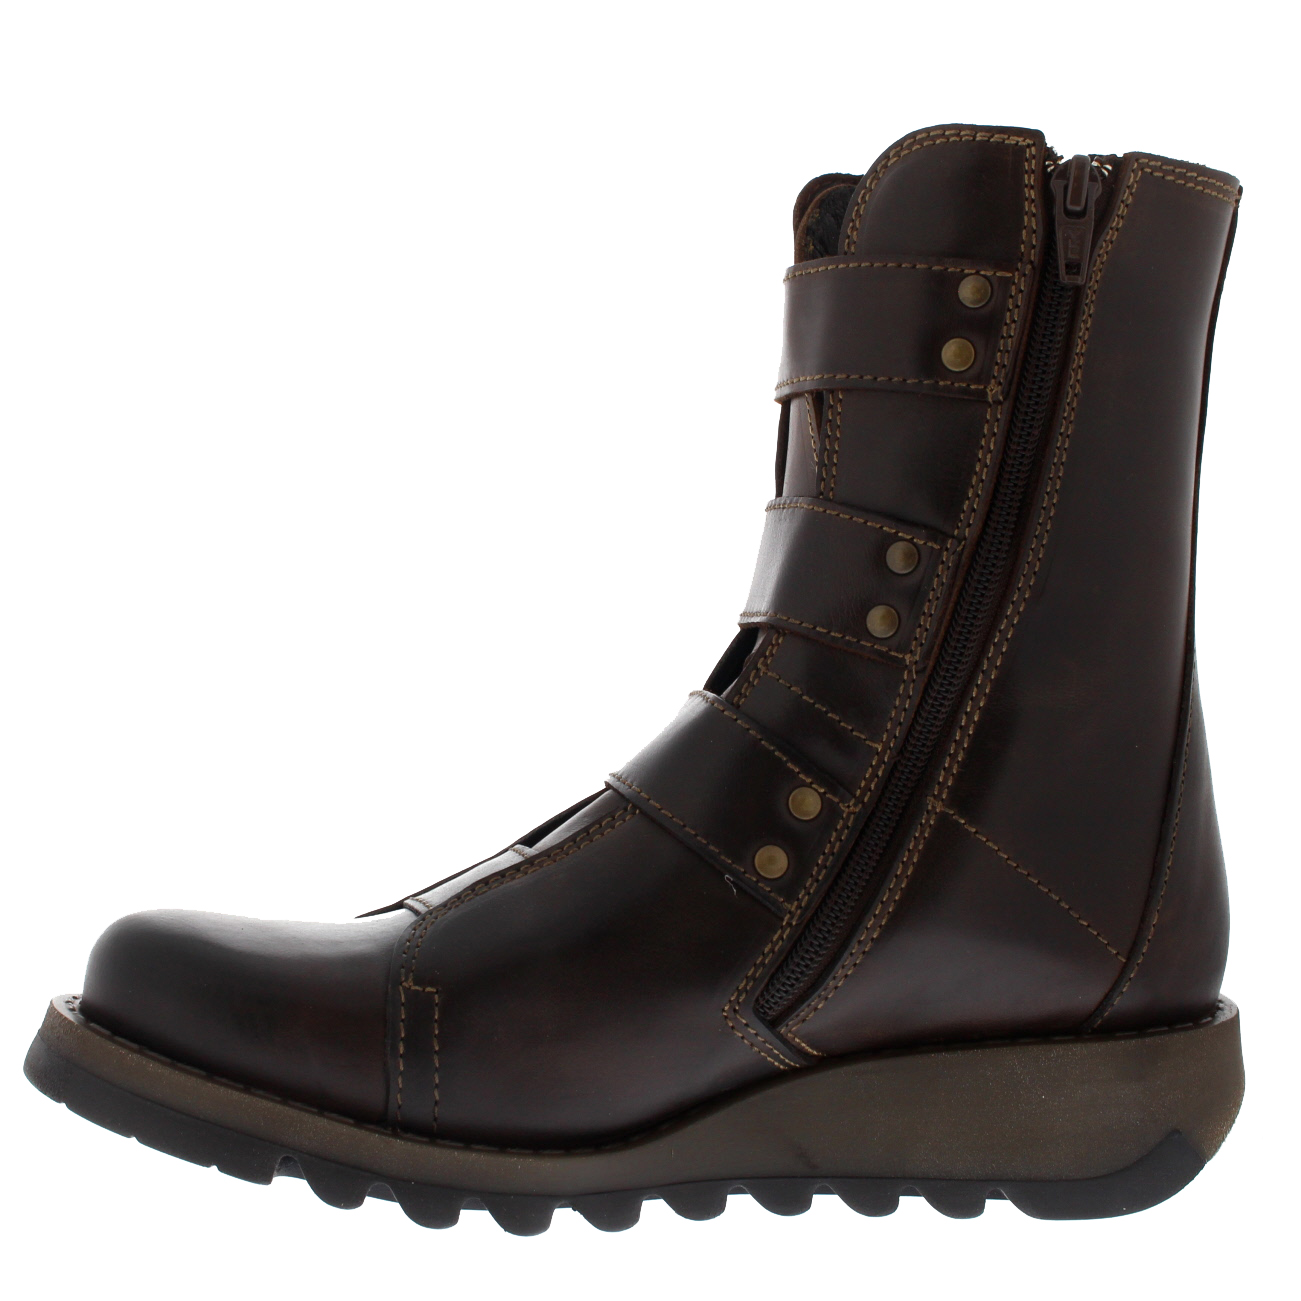 Ladies Brown Leather Knee High Riding Country Chatsworth Boots Catesby Chatsworth Country 5a353a